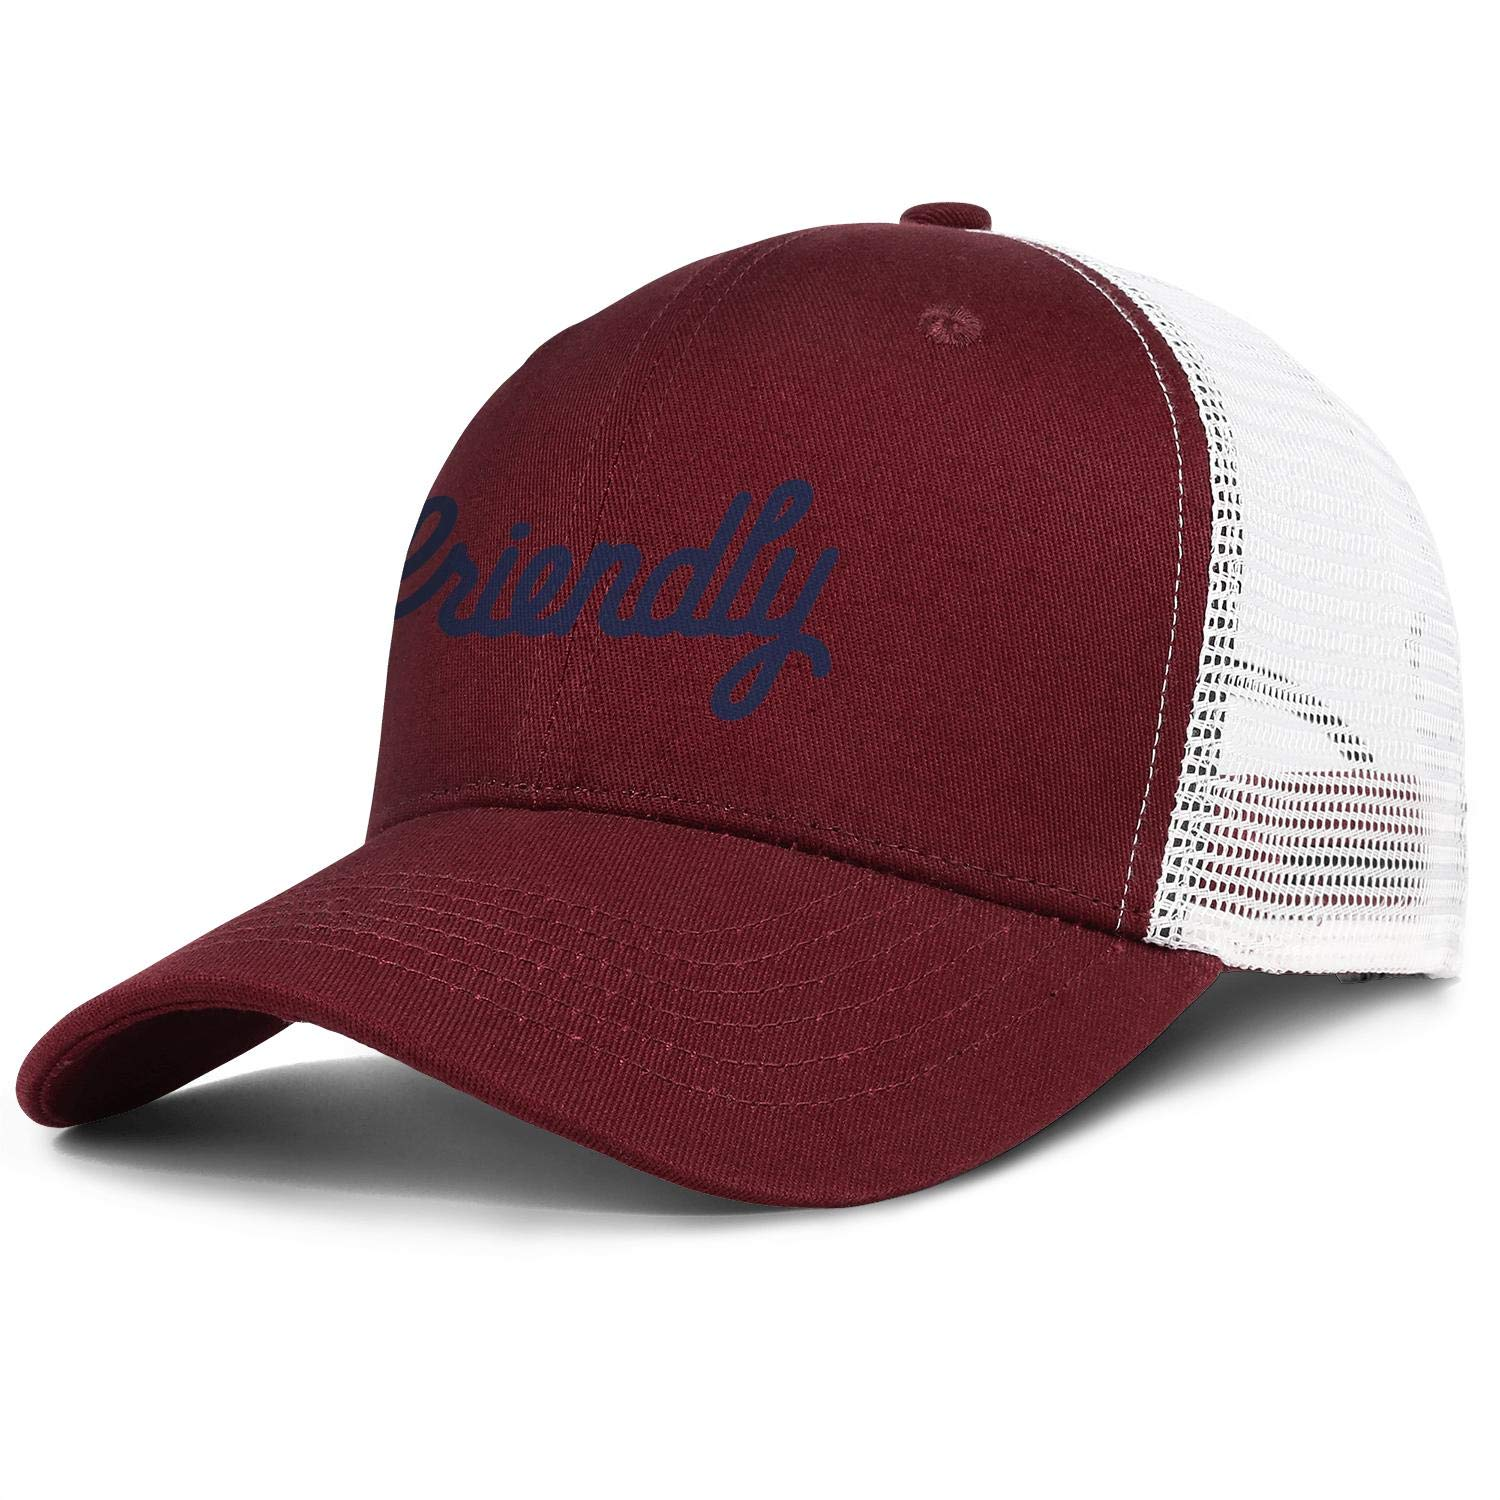 WintyHC Friendlys Logos Cowboy Hat Dad Hat Adjustable Fits Baseball Cap